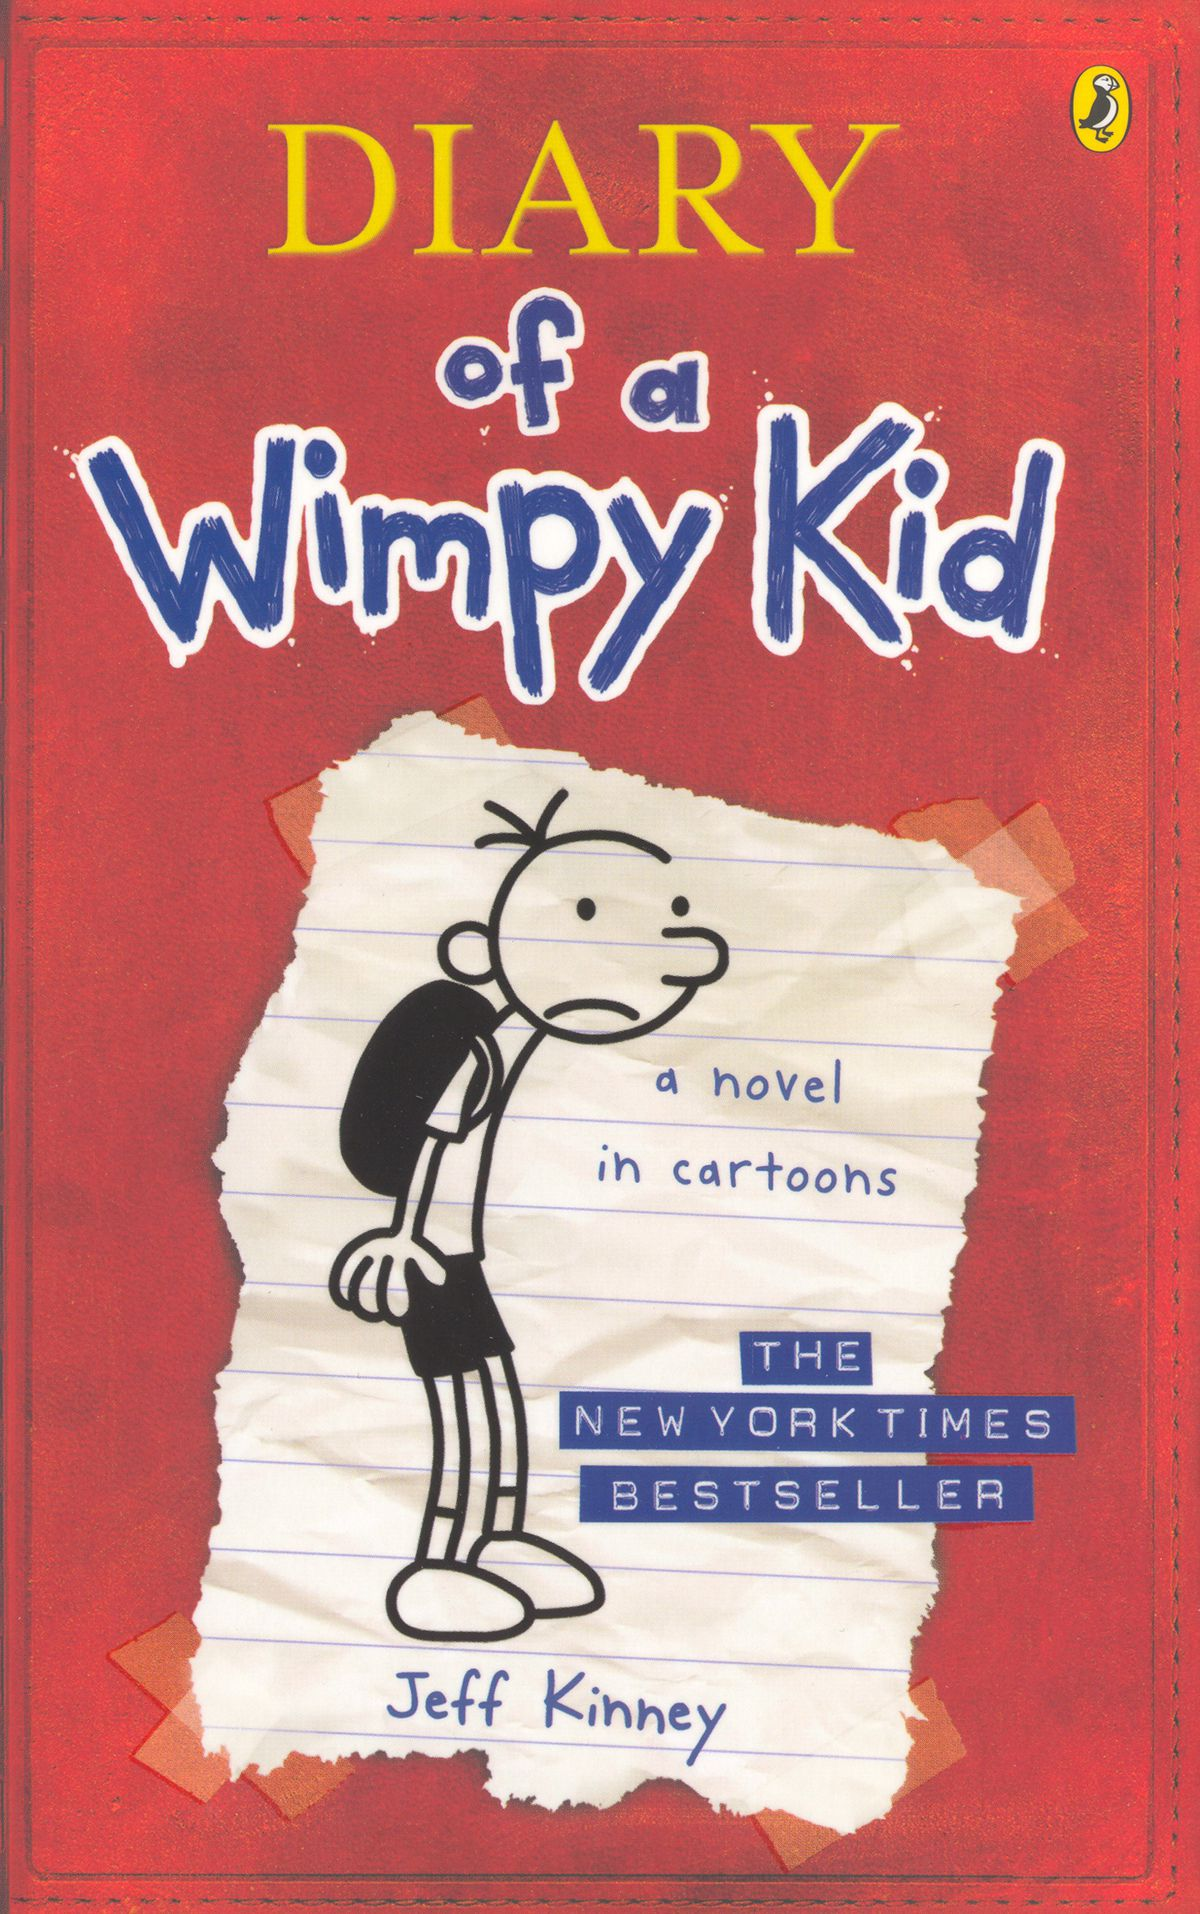 The cover of Diary of a Wimpy Kid